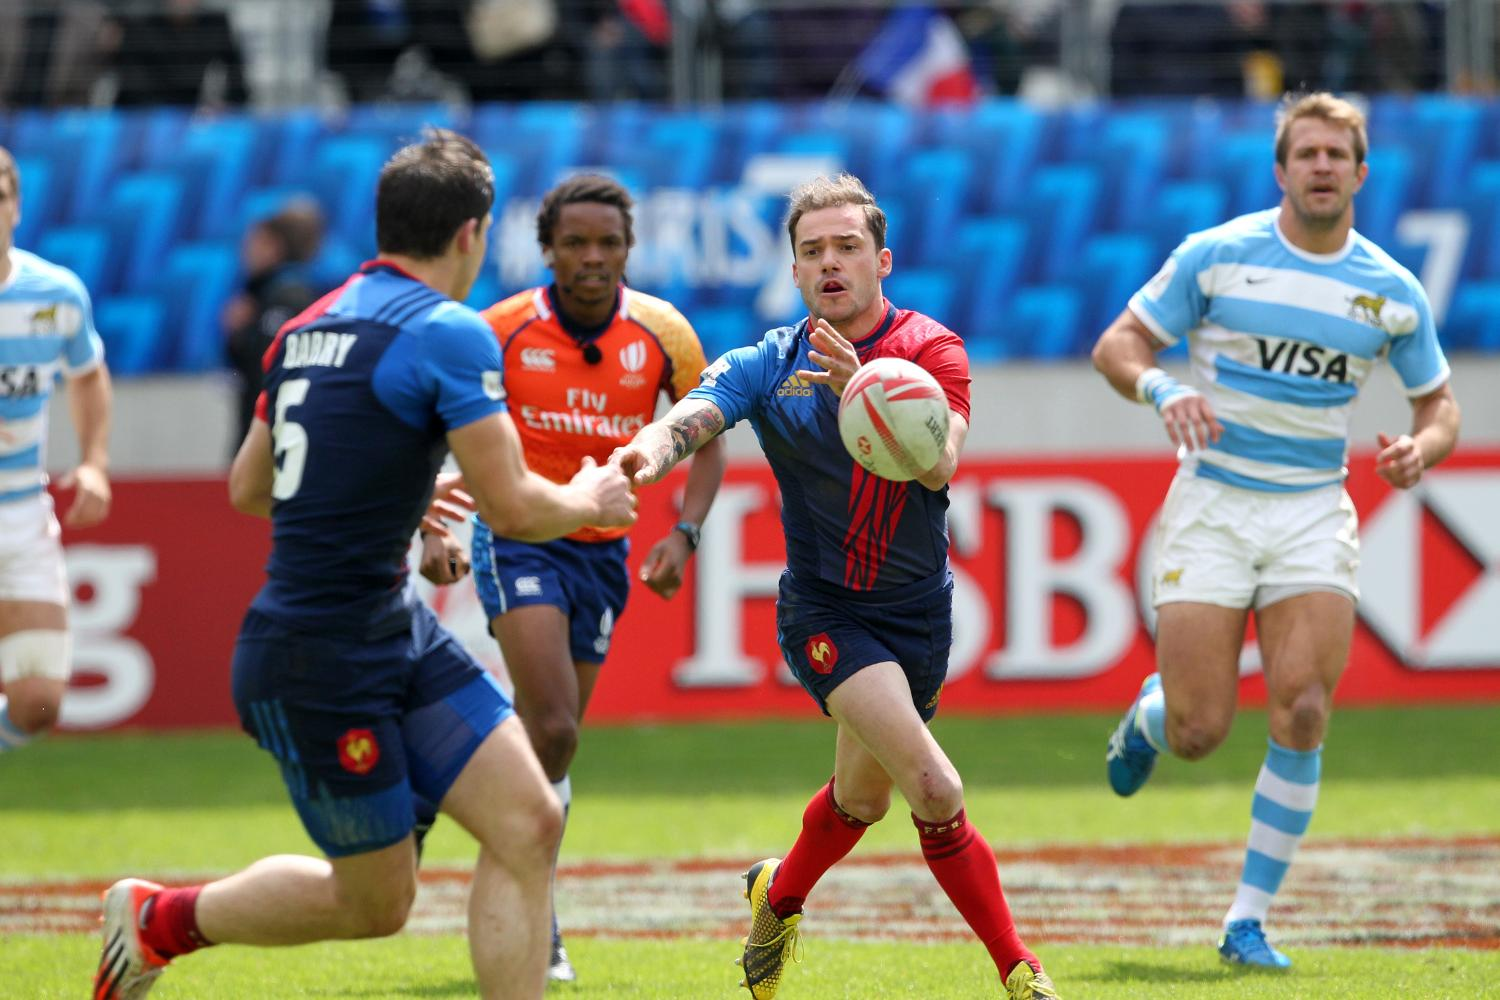 France's Terry Bouhraoua starred on day two of the HSBC Paris Sevens